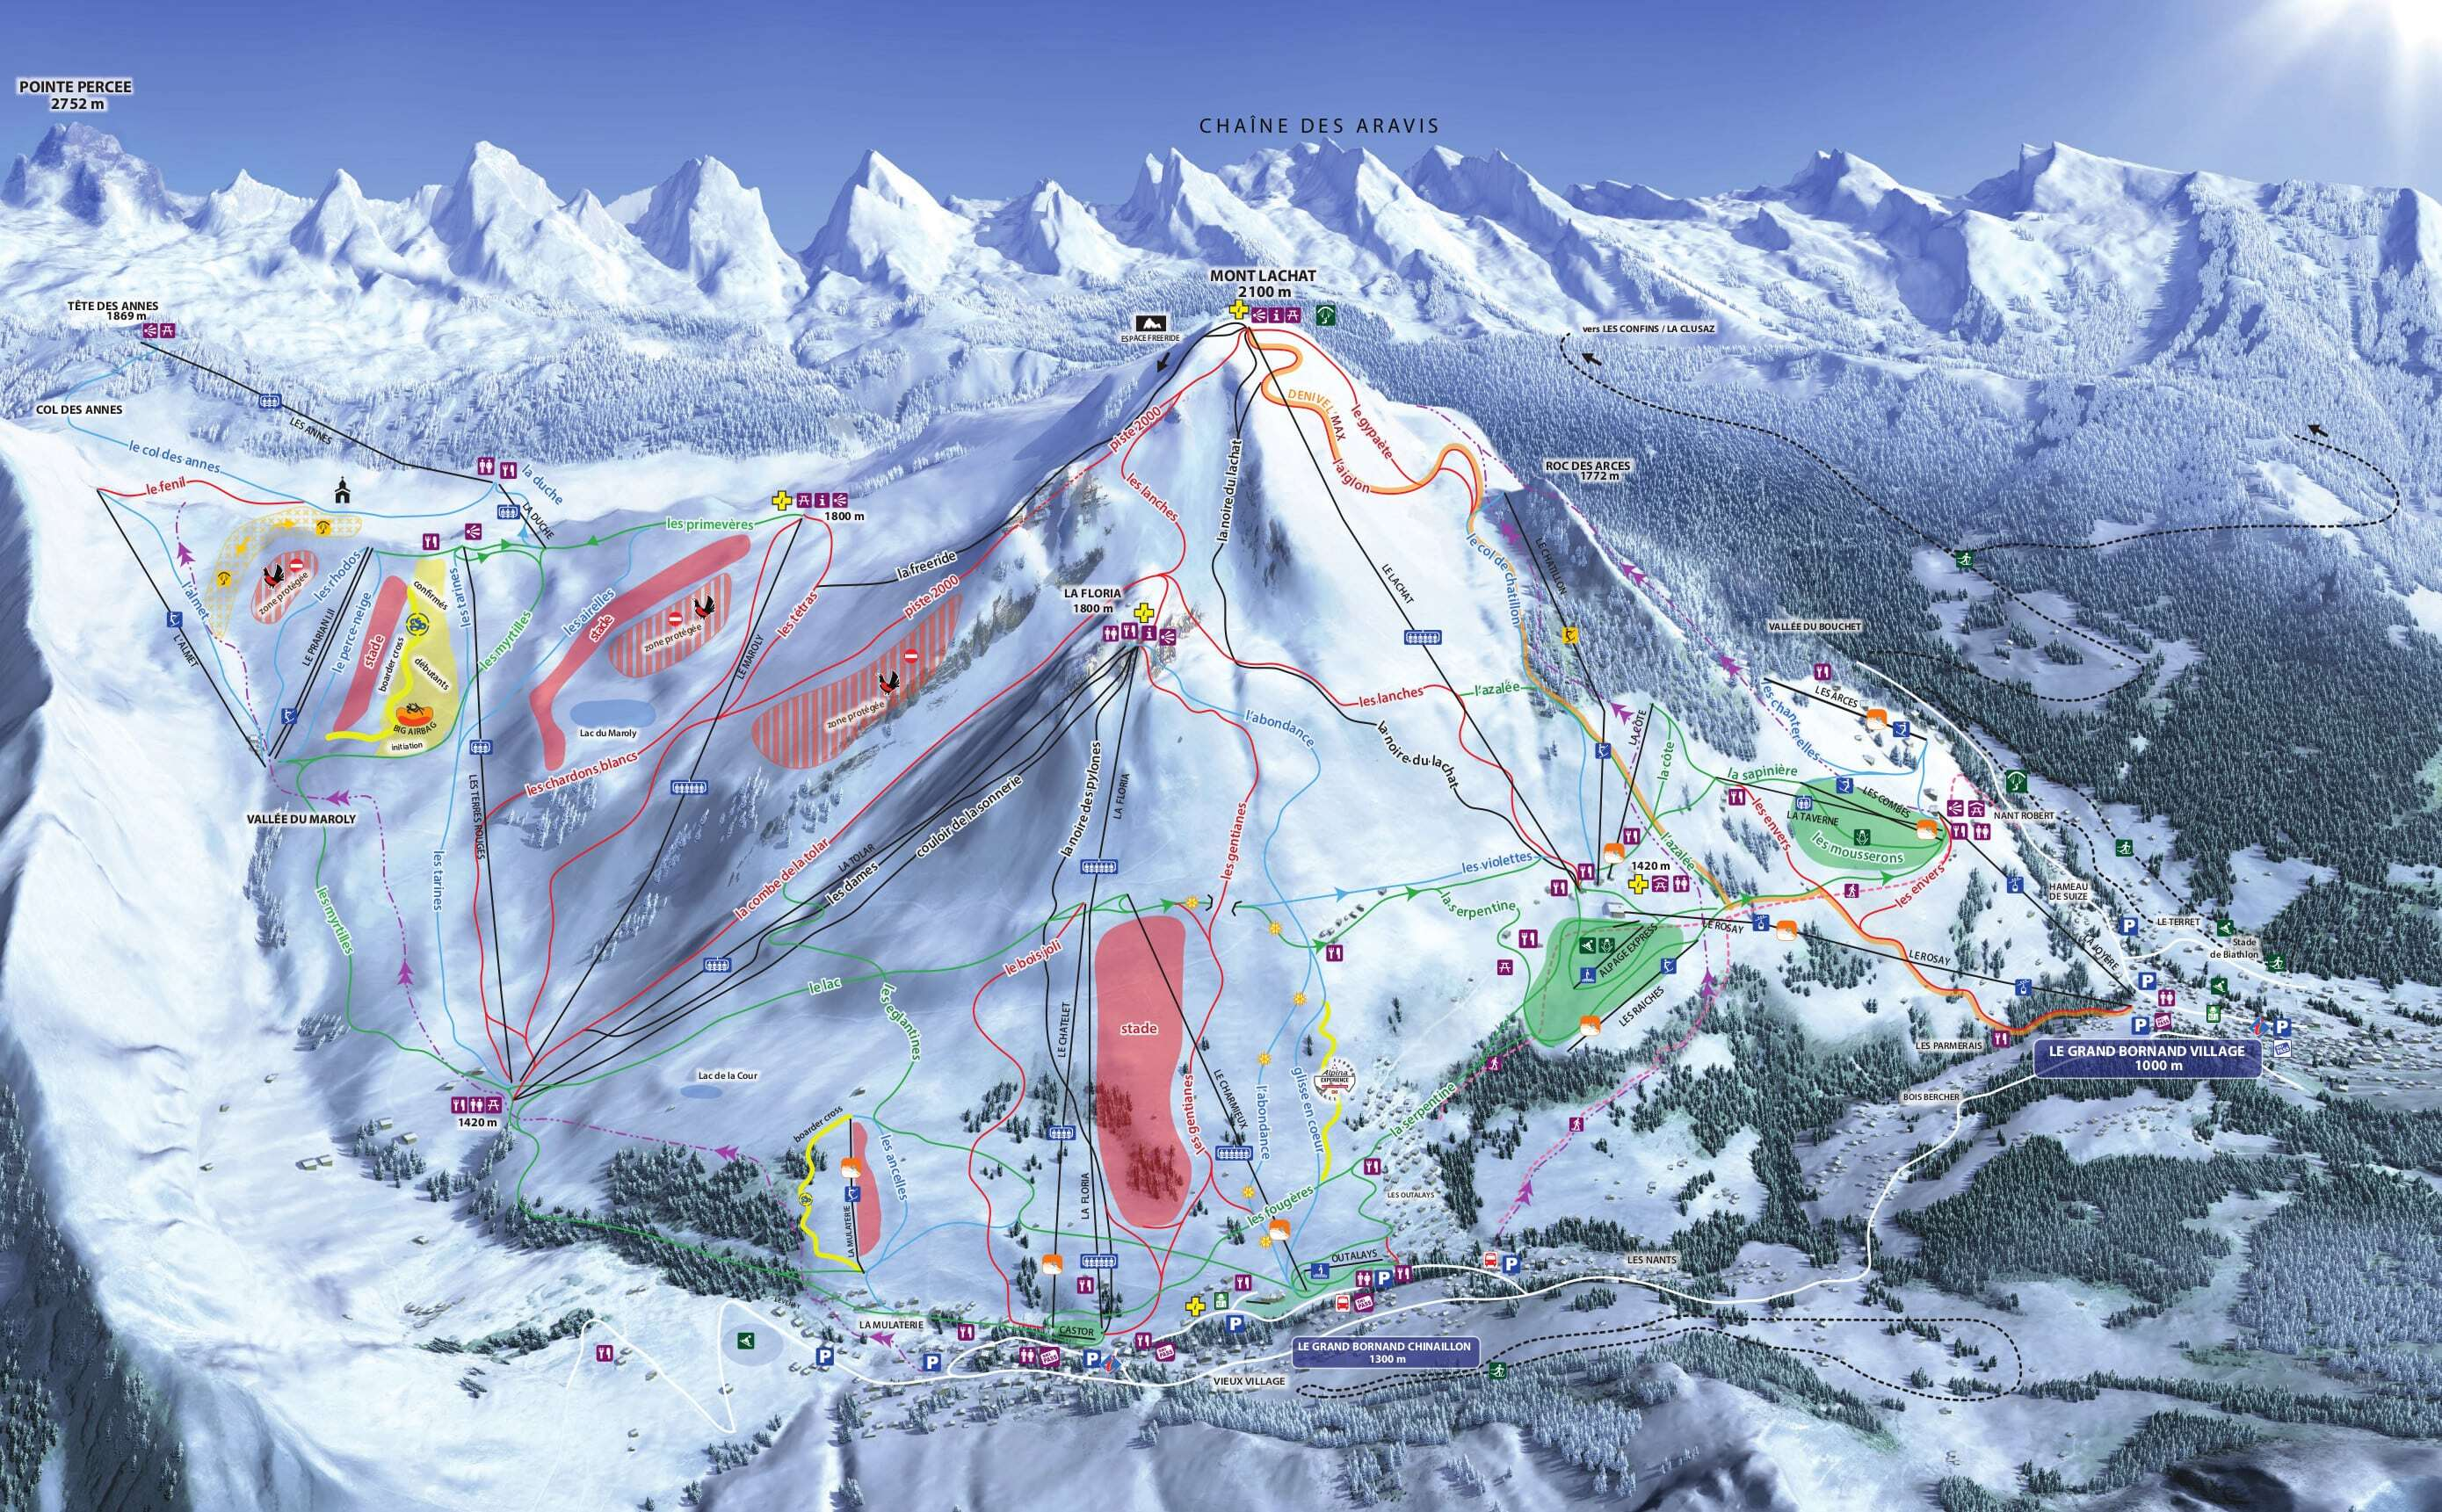 Le Grand Bornand Piste / Trail Map